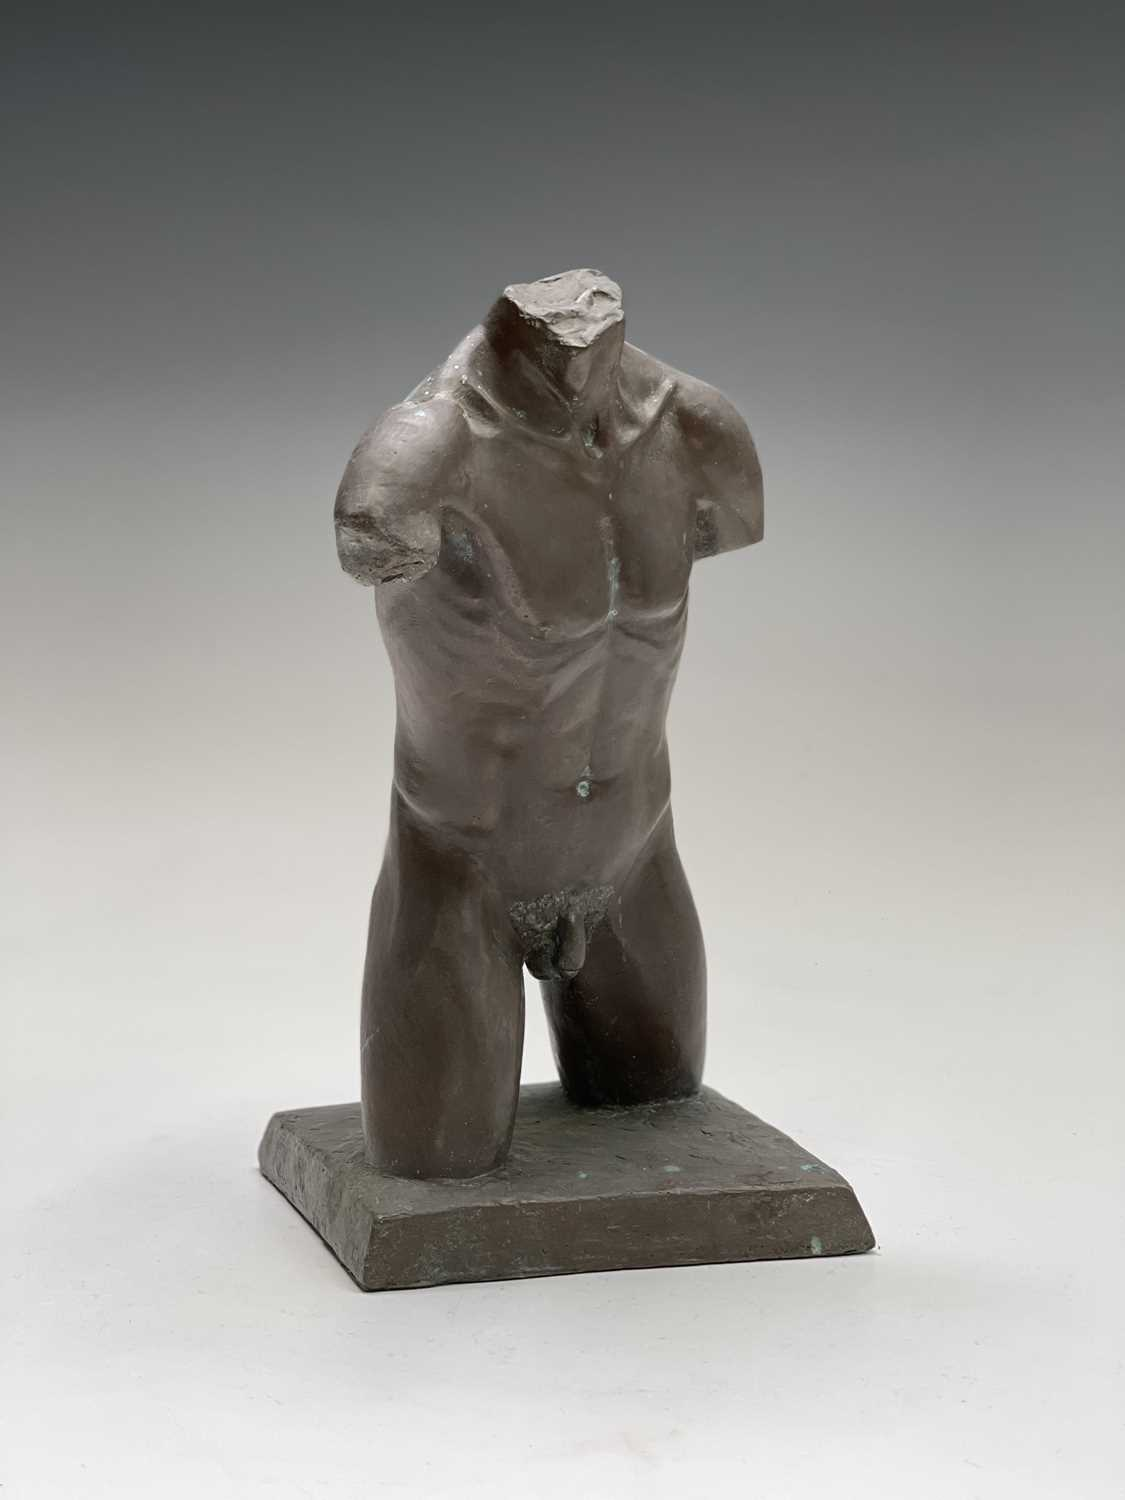 Alec WILES (1924)Males Torso Bronzed resin sculpture Signed and dated 1995Height 27cm